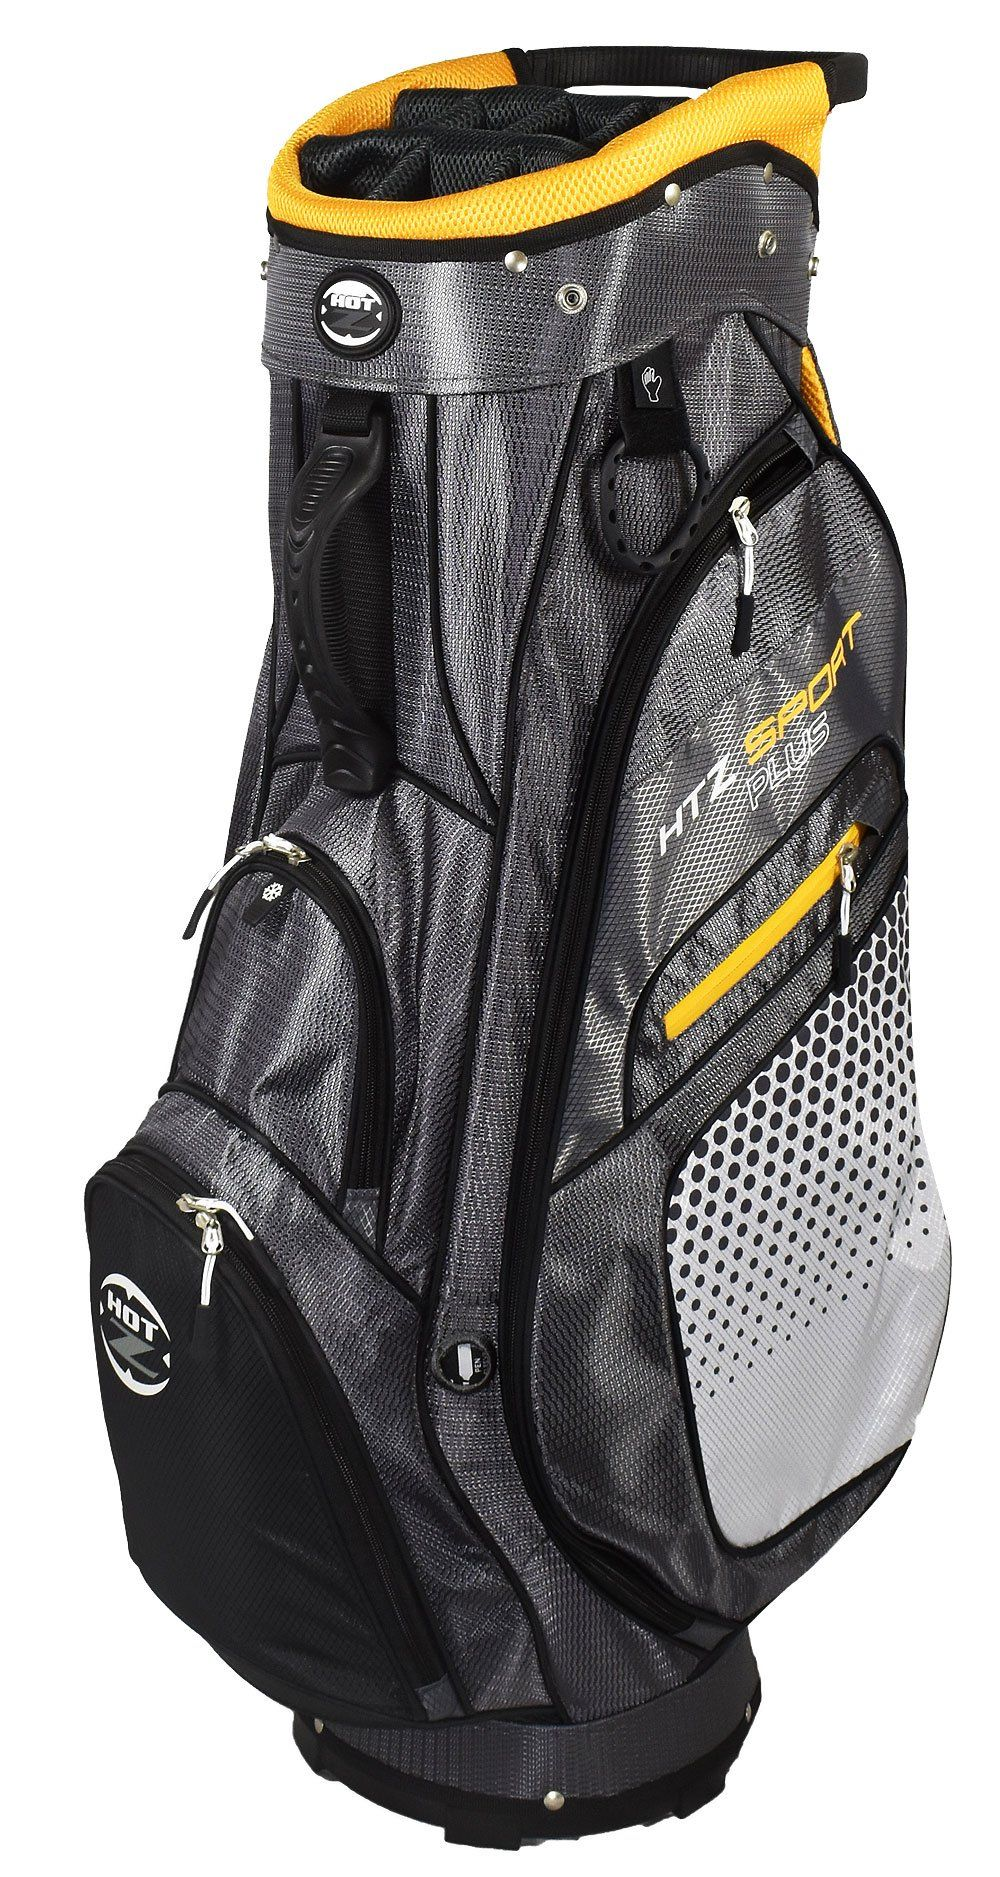 301e266301e2 Golf Bag *** HotZ Golf HTZ Sport Plus Cart Bag *** Find out more ...